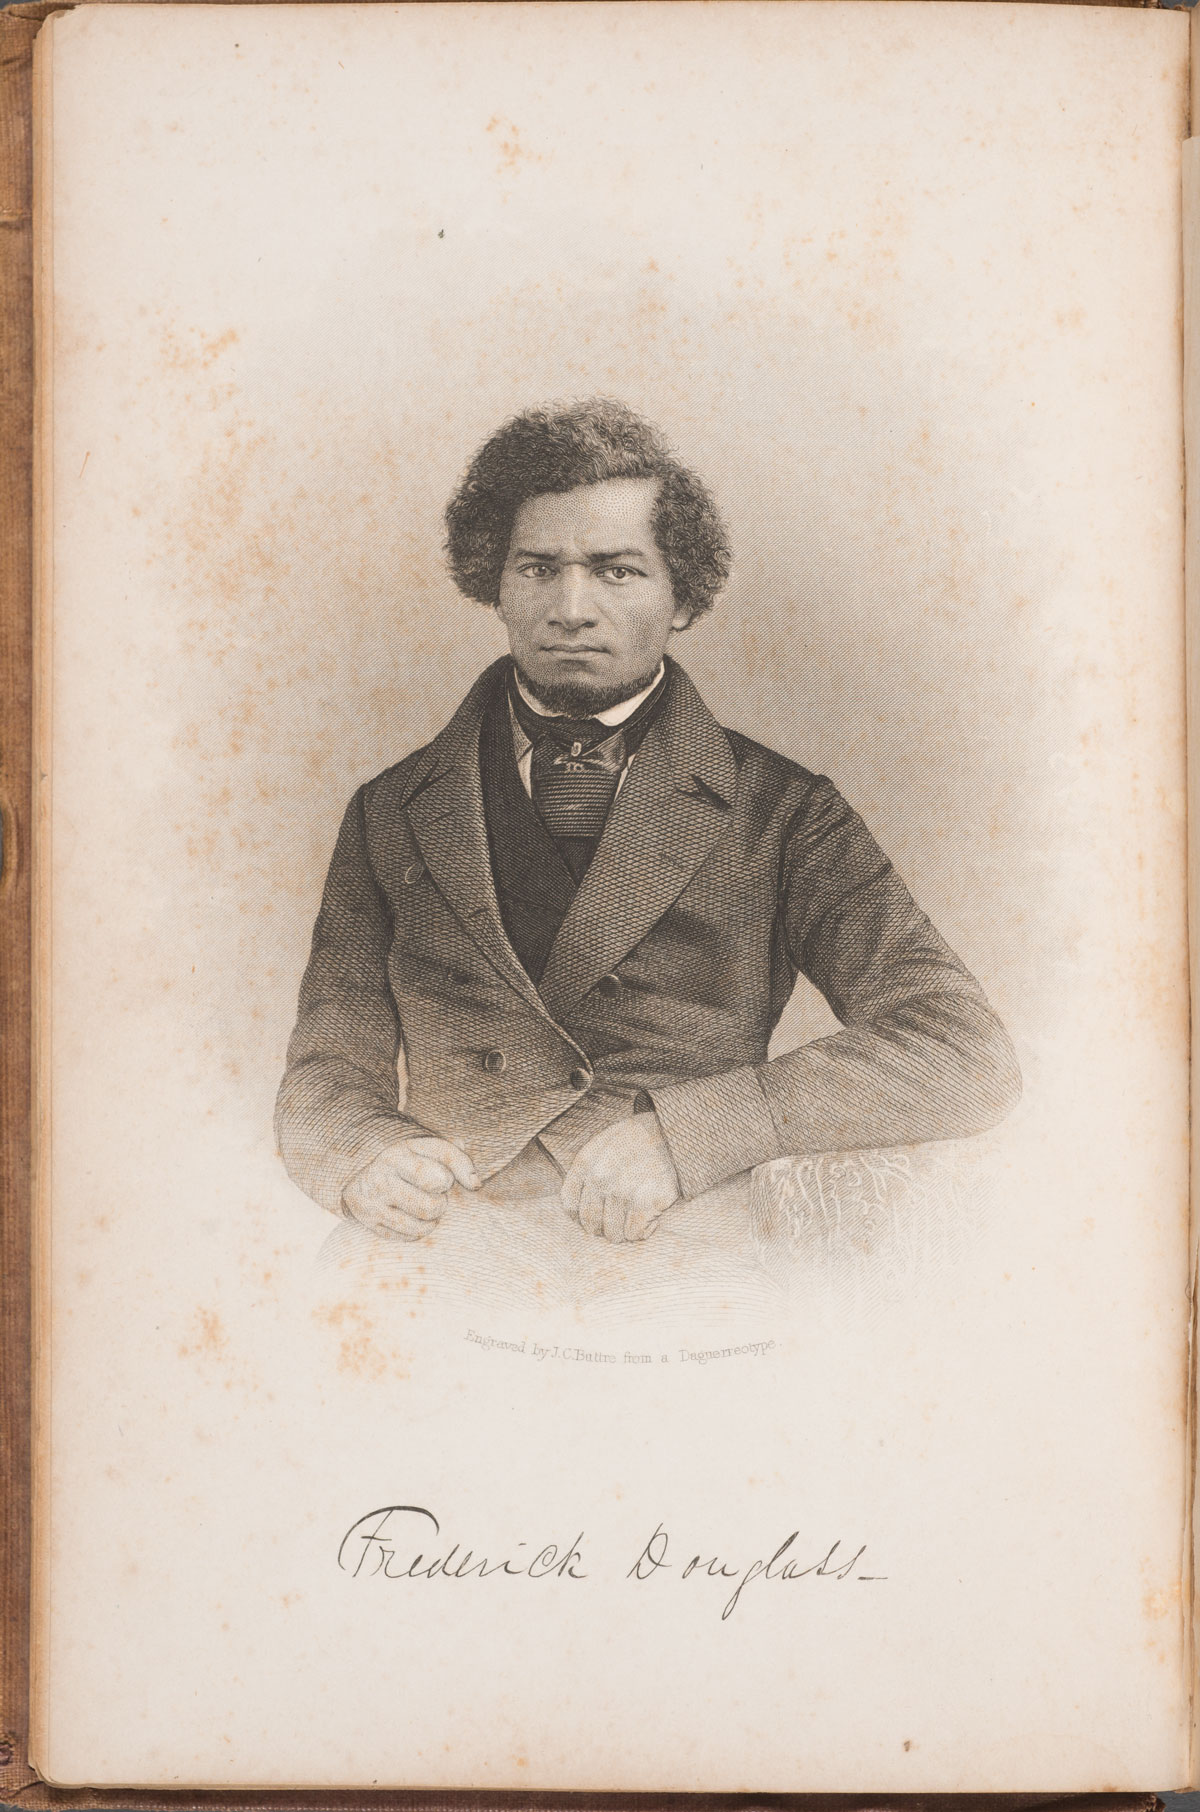 Frederick Douglass and the Mass Meeting for Civil Rights